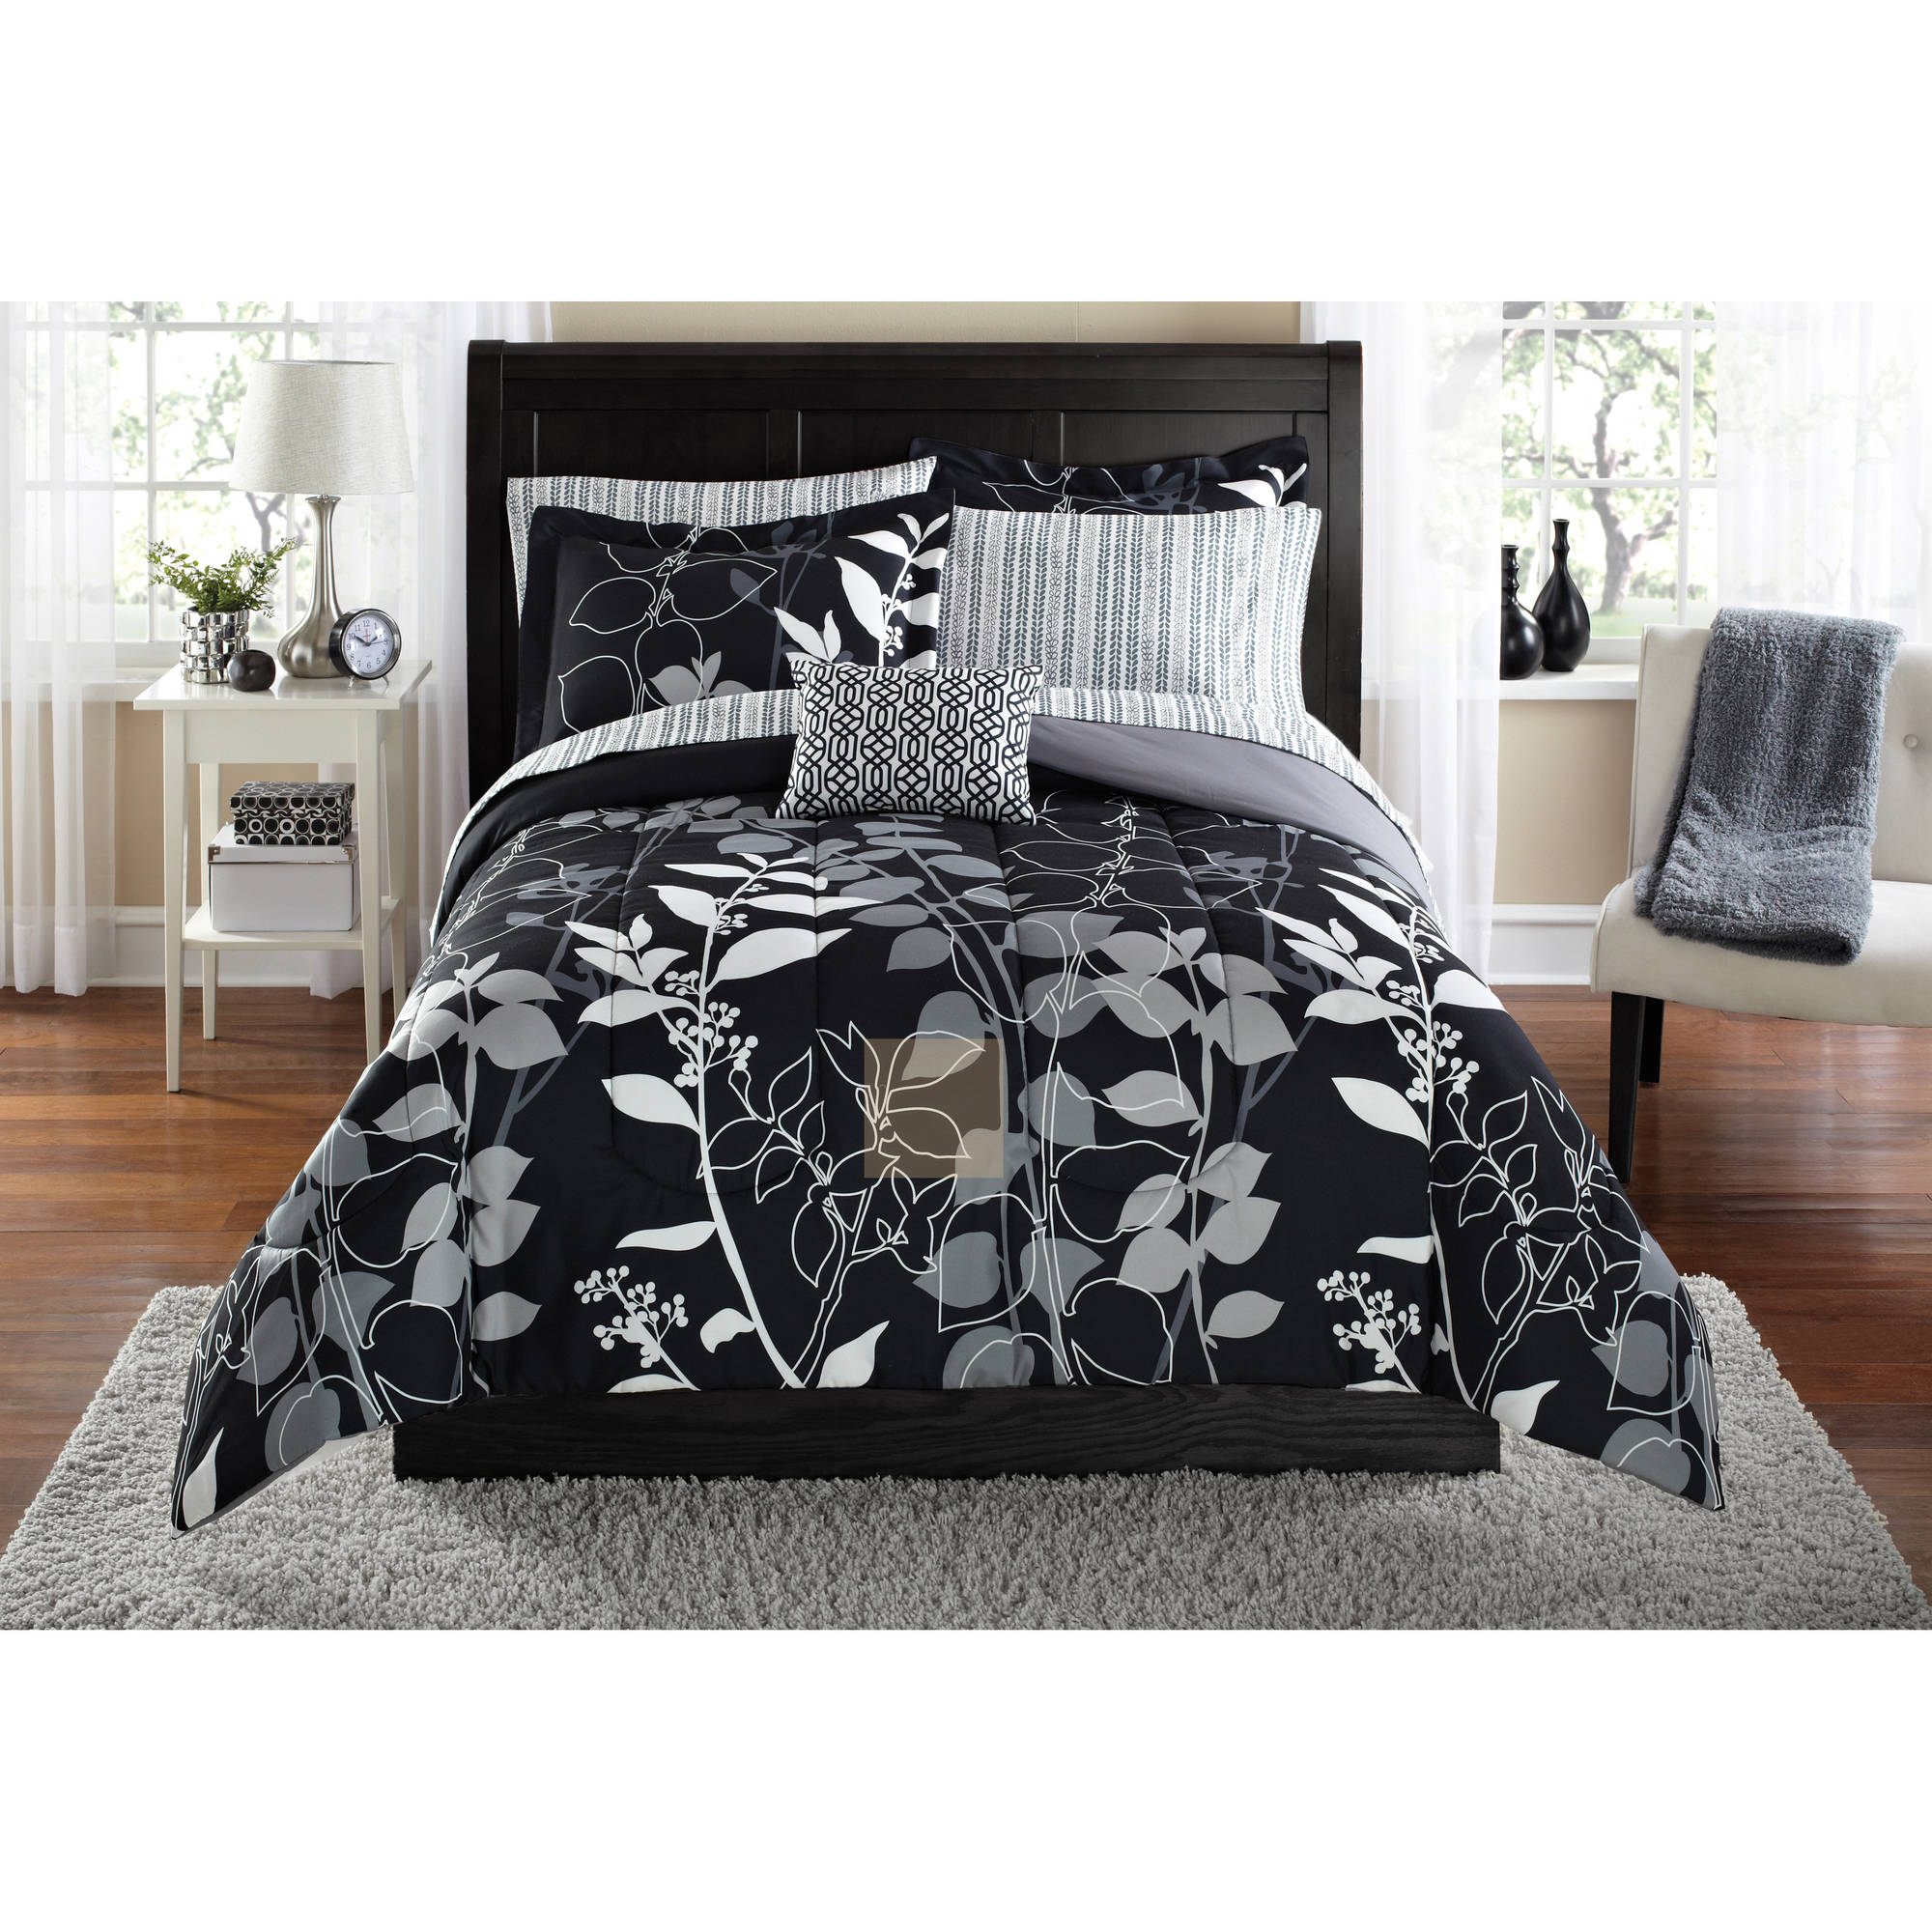 Mainstays Orkasi Bed In A Bag Coordinated Bedding Set   Walmart.com